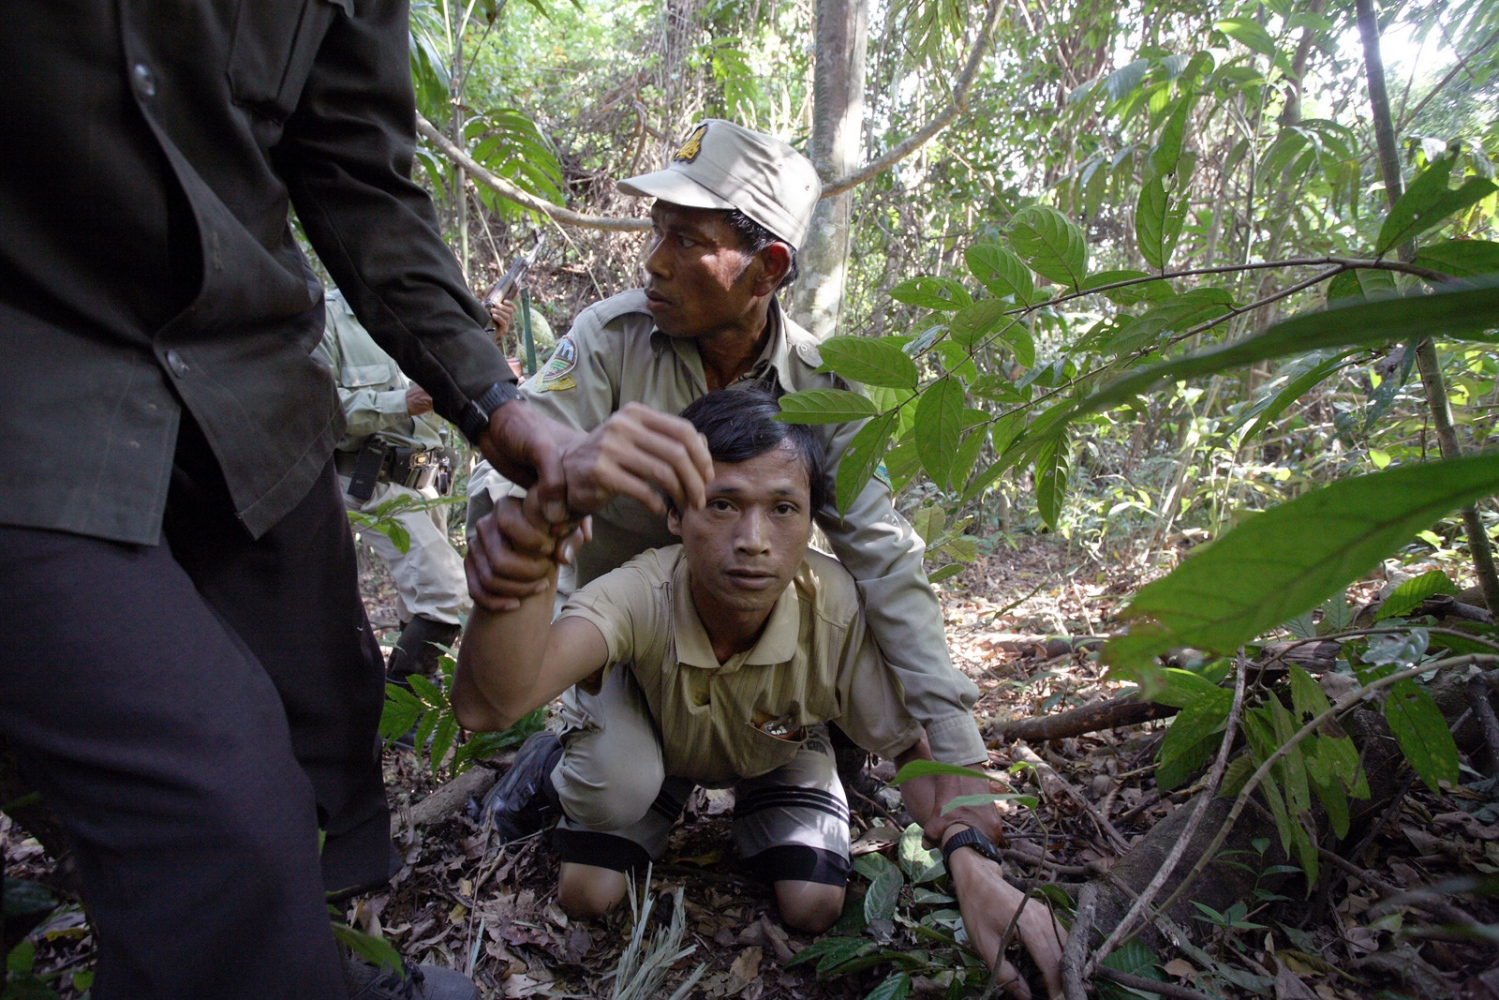 Whilst on a patrol a group comprising of park rangers and Cambodian soldiers catch a worker of an illegal sassafras oil distillery. He is a Vietnamese national sent to work here from Phnom Penh. After being pinned to the ground, he is searched and hand-cuffed. Sassafras distilleries that produce the oil from rare Mreah Prew Phnom trees have become a real problem in this area but difficult to stop due to the remoteness of the forest and the high demand and profitablility as the oil can be used as an ingredient for the drug Ecstasy.